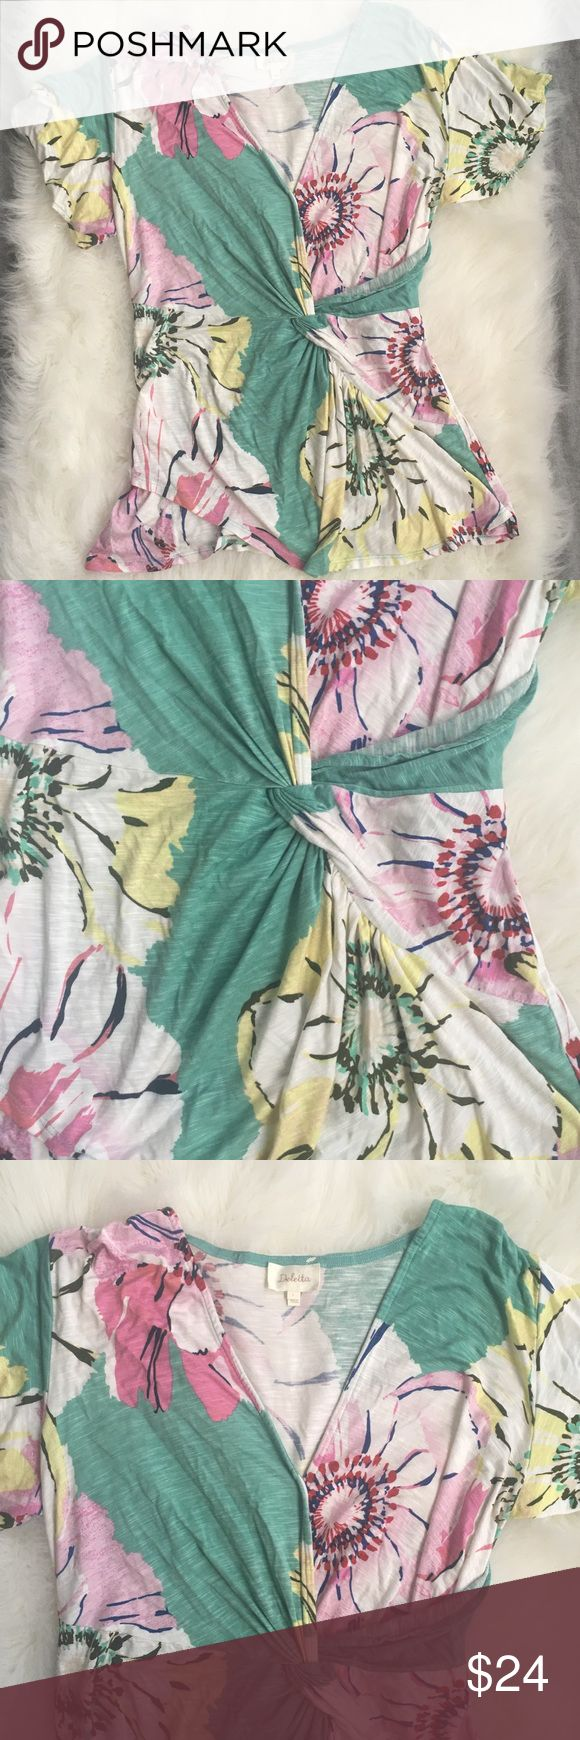 Anthropologie Deletta floral wrap top Like new, no stains or flaws. This floral top has a little flair with its knotted and cinched wrap front that carries over to the back, it is mainly green with pink, white, red and yellow floral accents Anthropologie Tops Tees - Short Sleeve